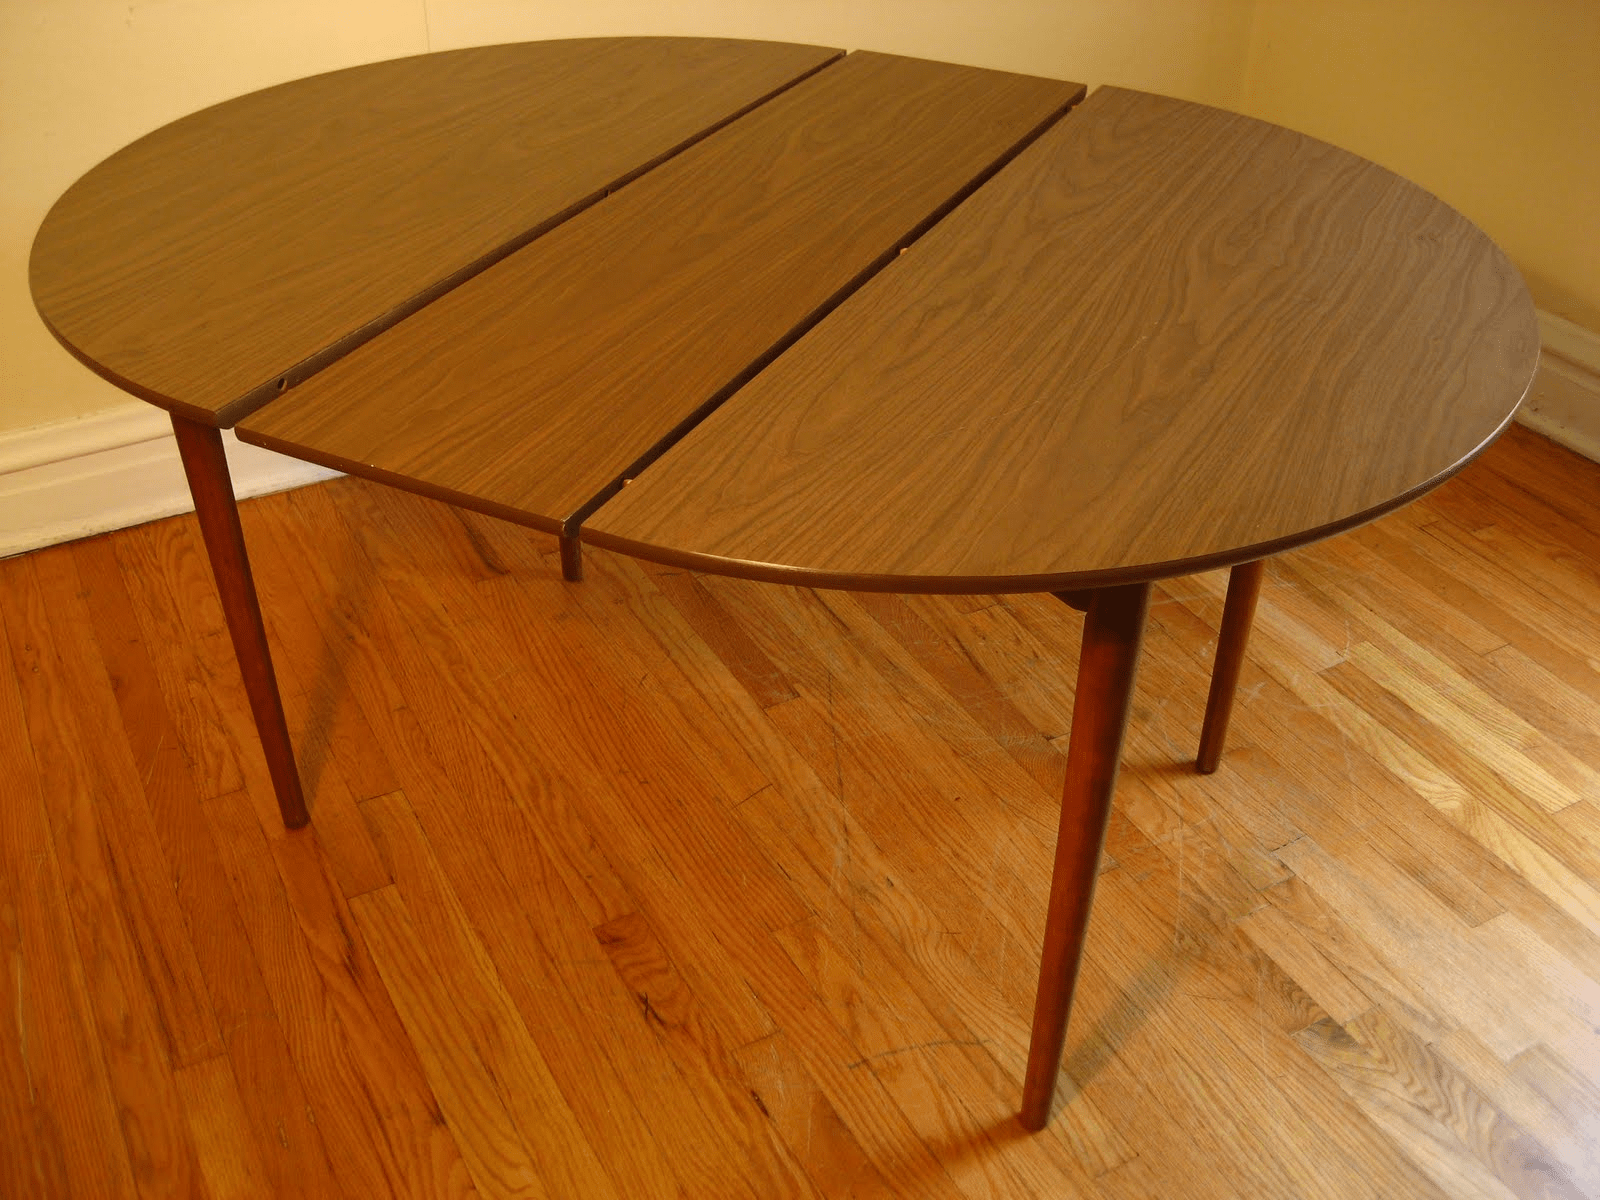 Formica top dining table